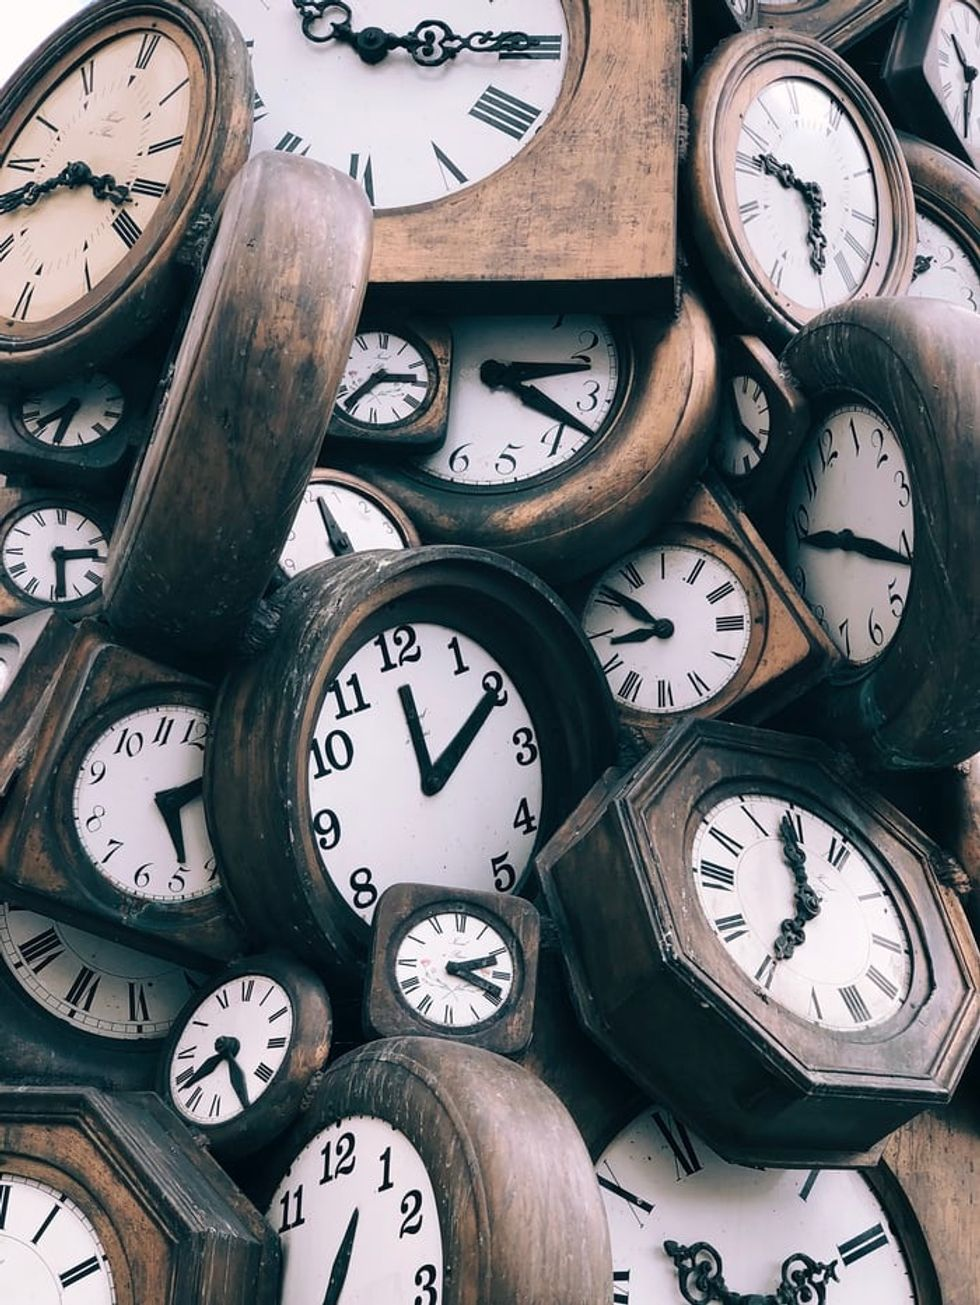 Poetry On Odyssey: The Seconds Ticked